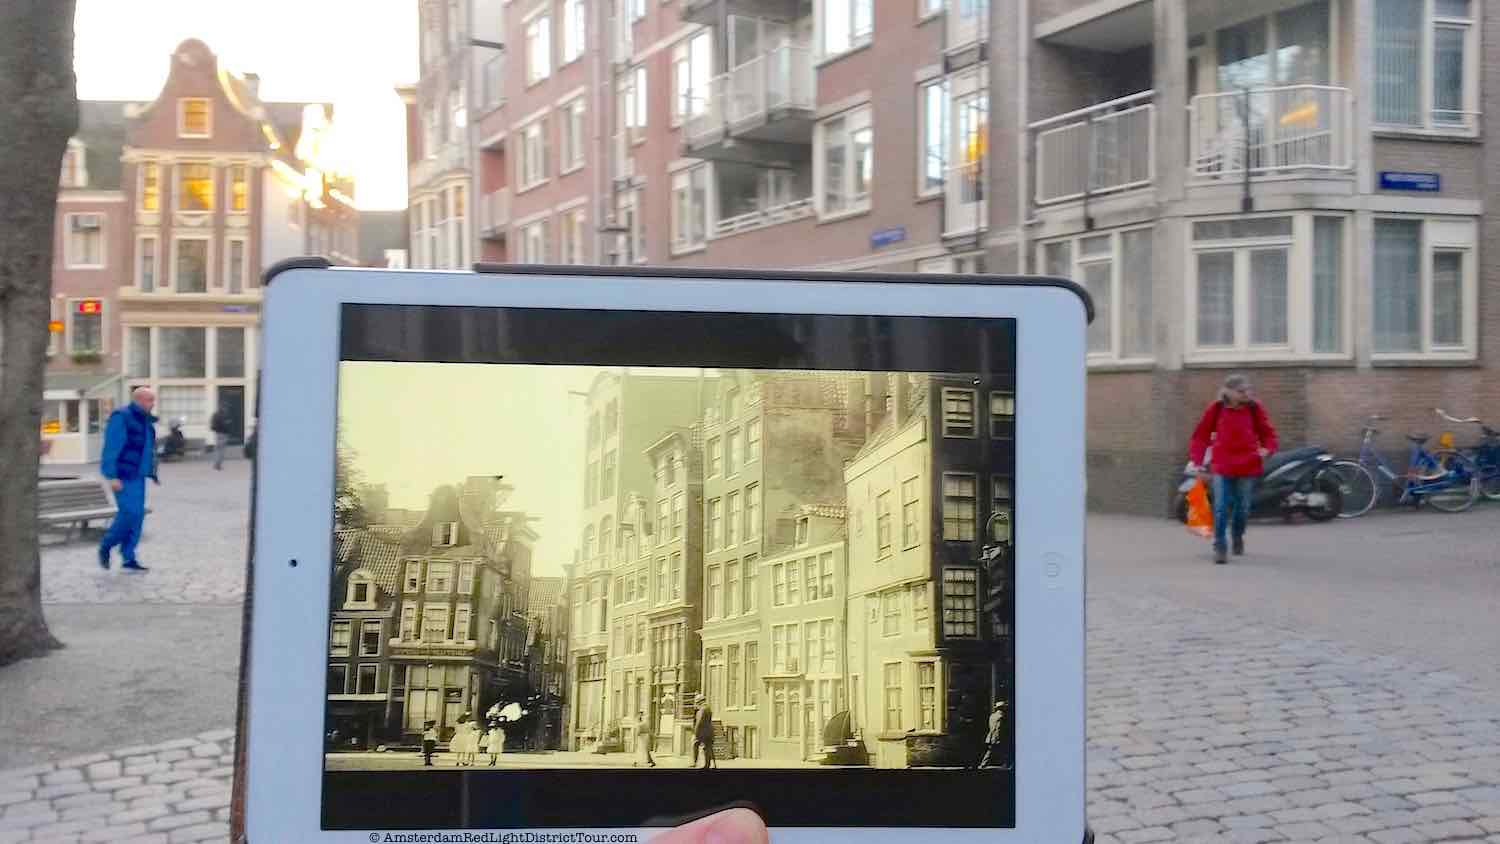 Amsterdam Red Light District Now and Then: The Old Church Square